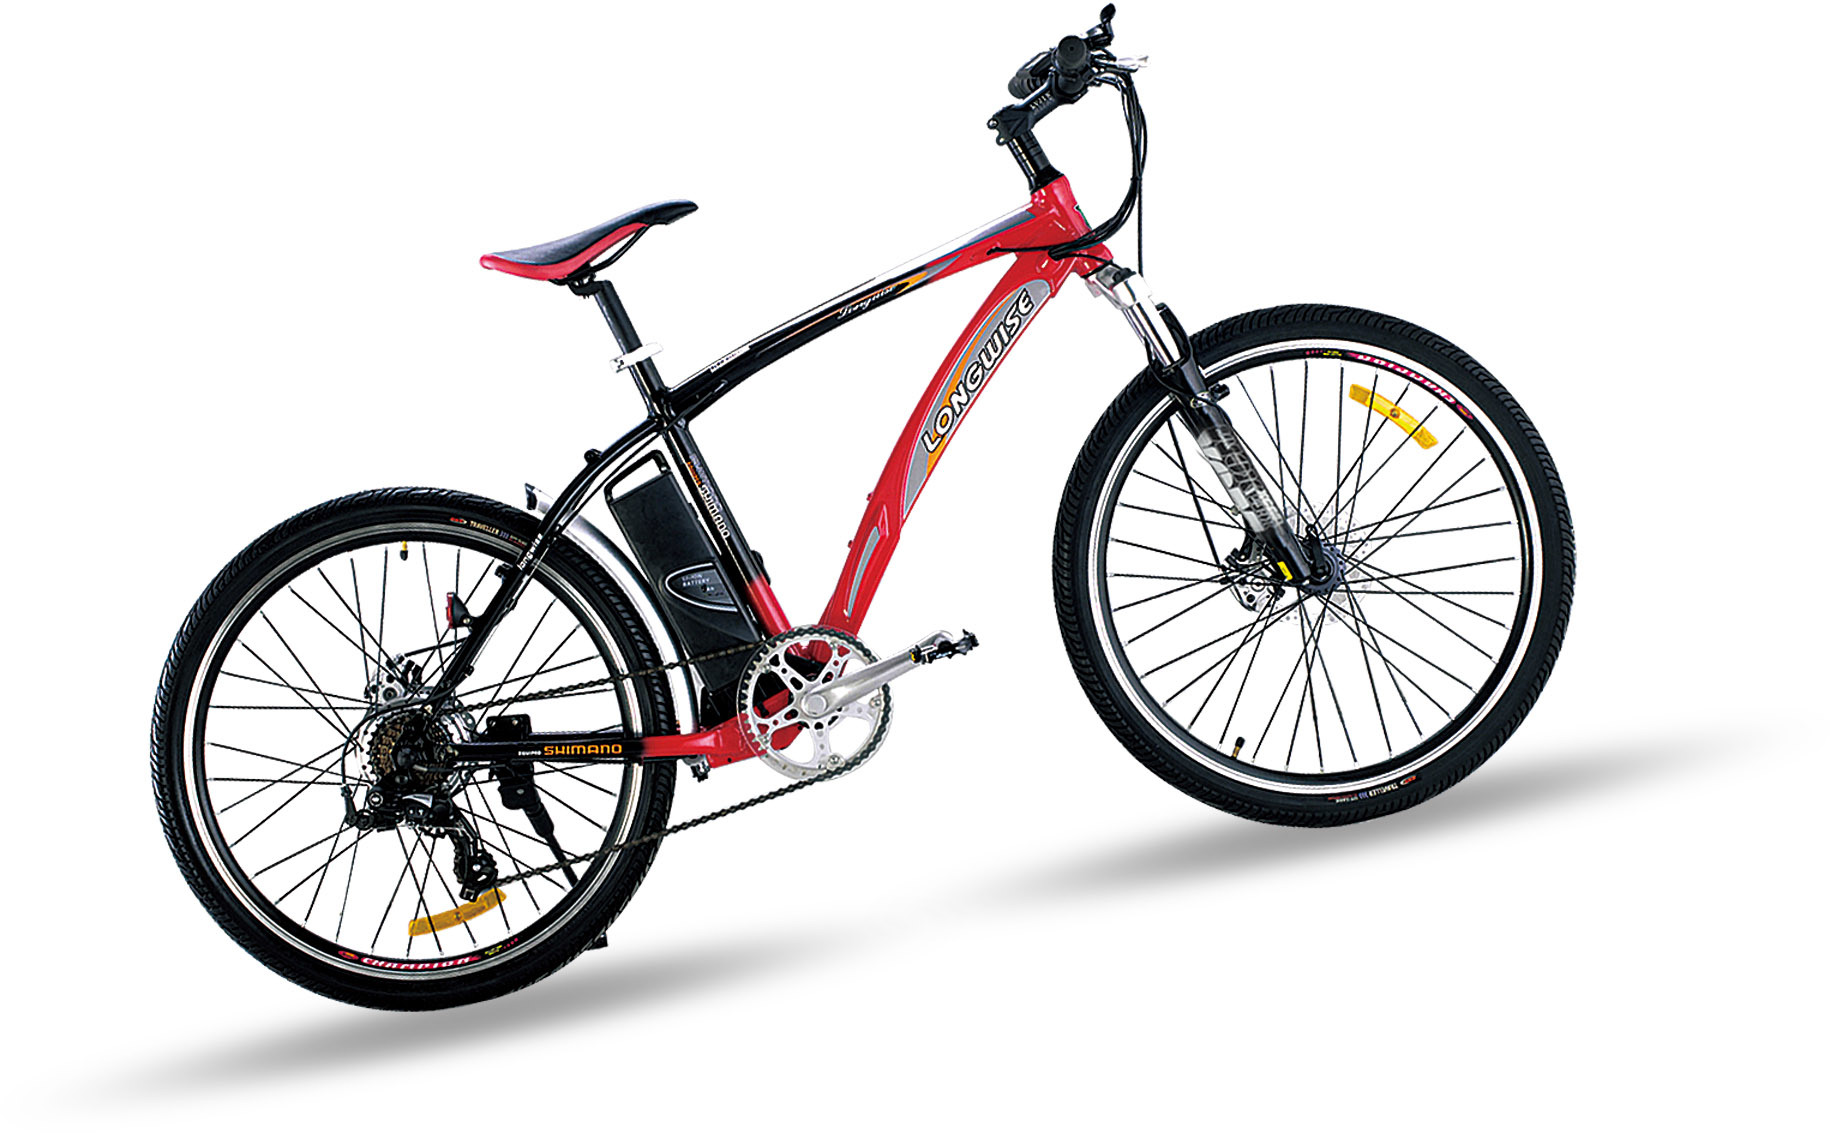 Mid Position Motor Electric Mountain Bike Bicycle Ys Meb 011 Images